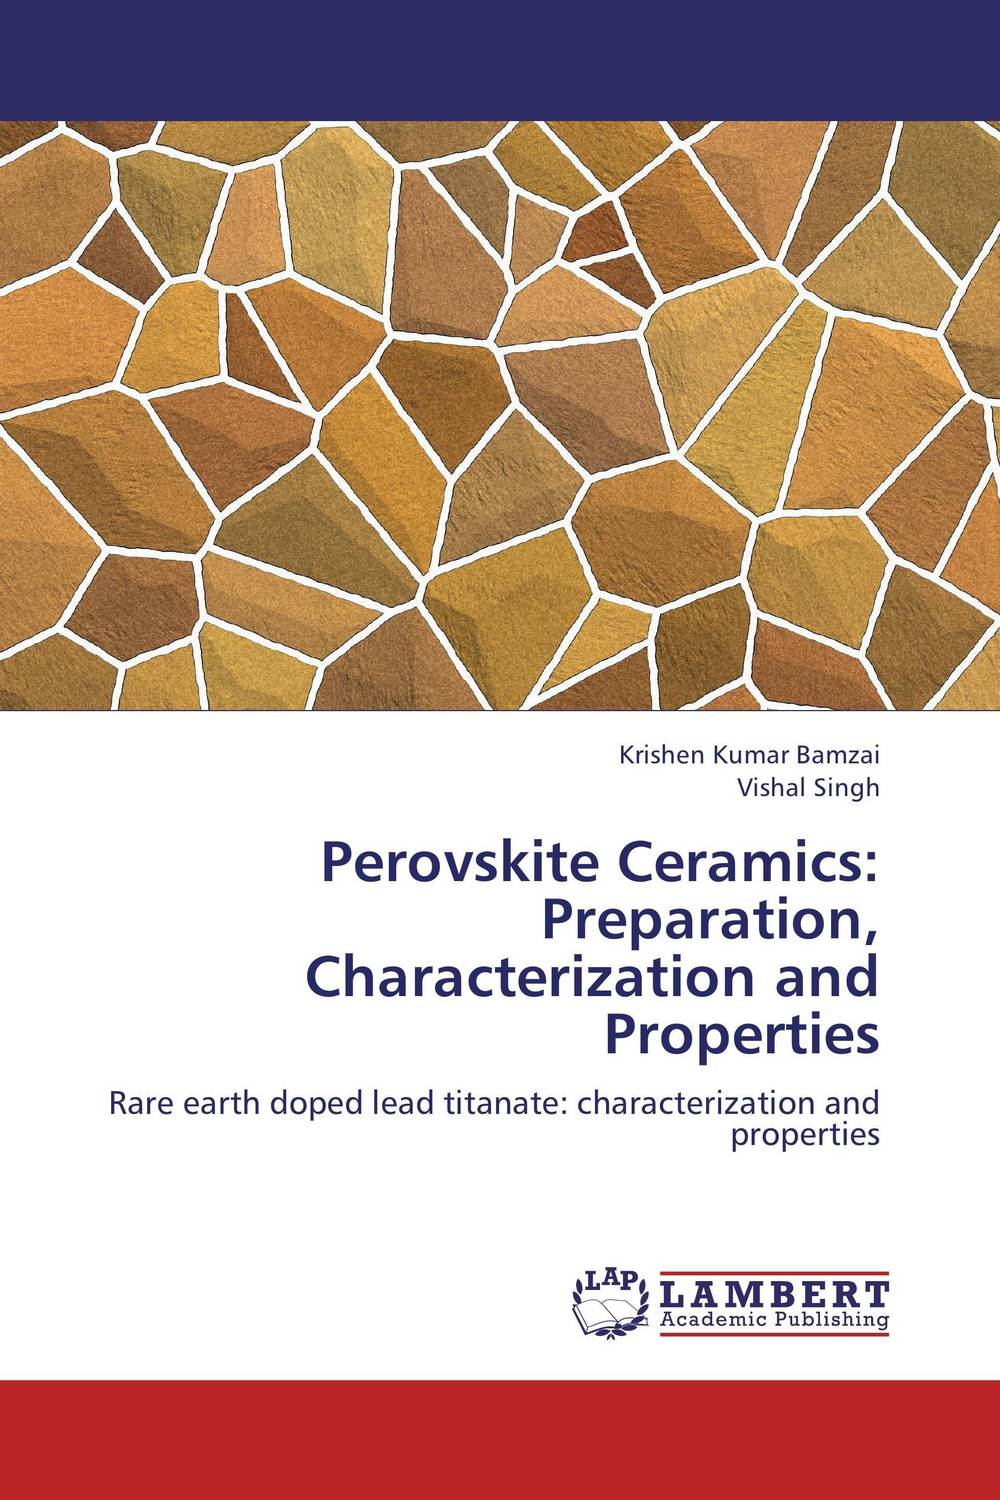 Perovskite Ceramics: Preparation, Characterization and Properties engineering materials 1 an introduction to properties applications and design v 1